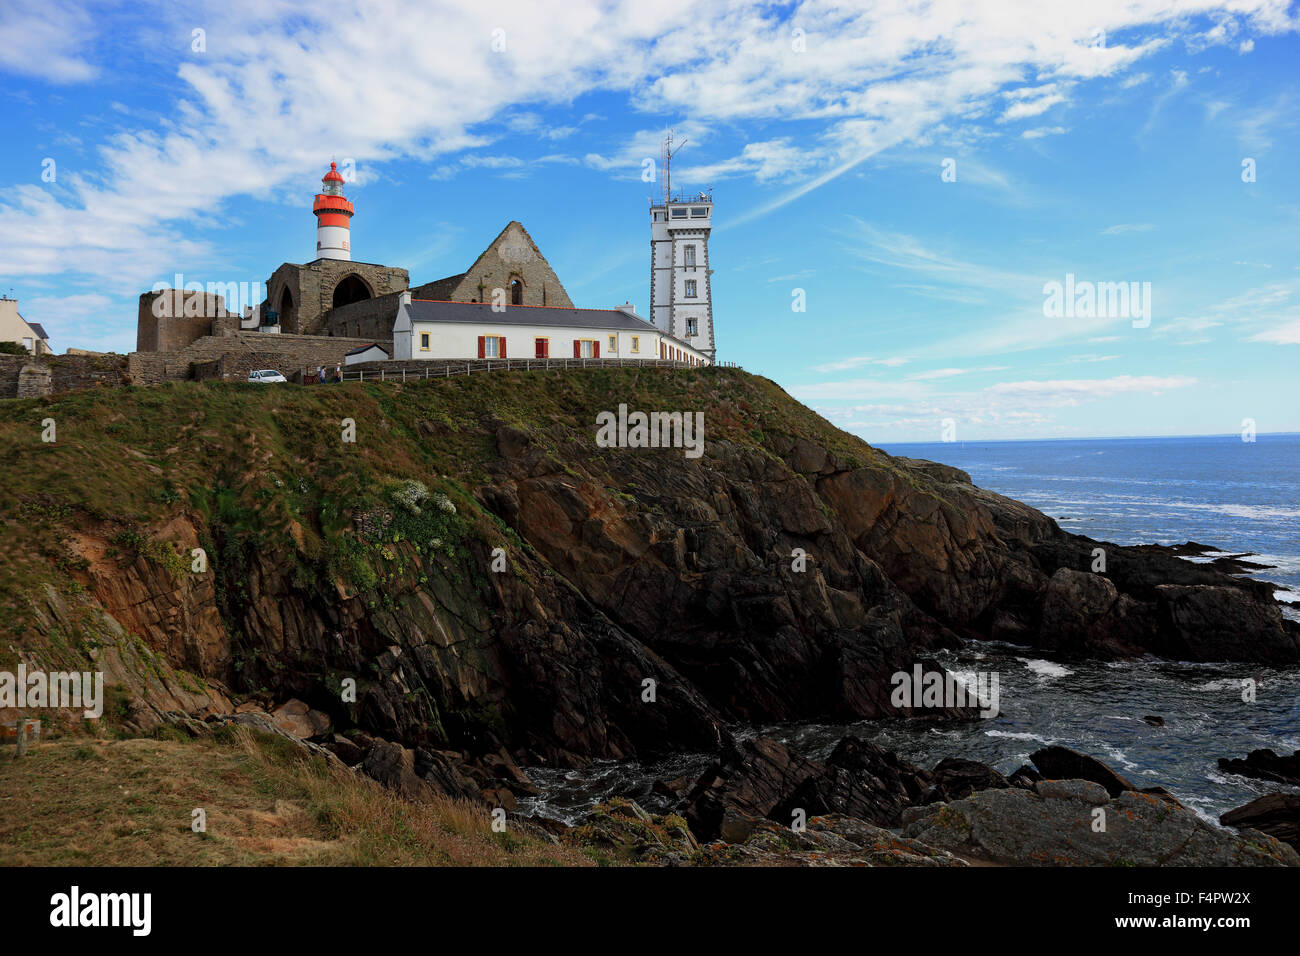 France, Brittany, am La Pointe Saint-Mathieu, Lighthouse Semaphore and the monastery ruins Stock Photo